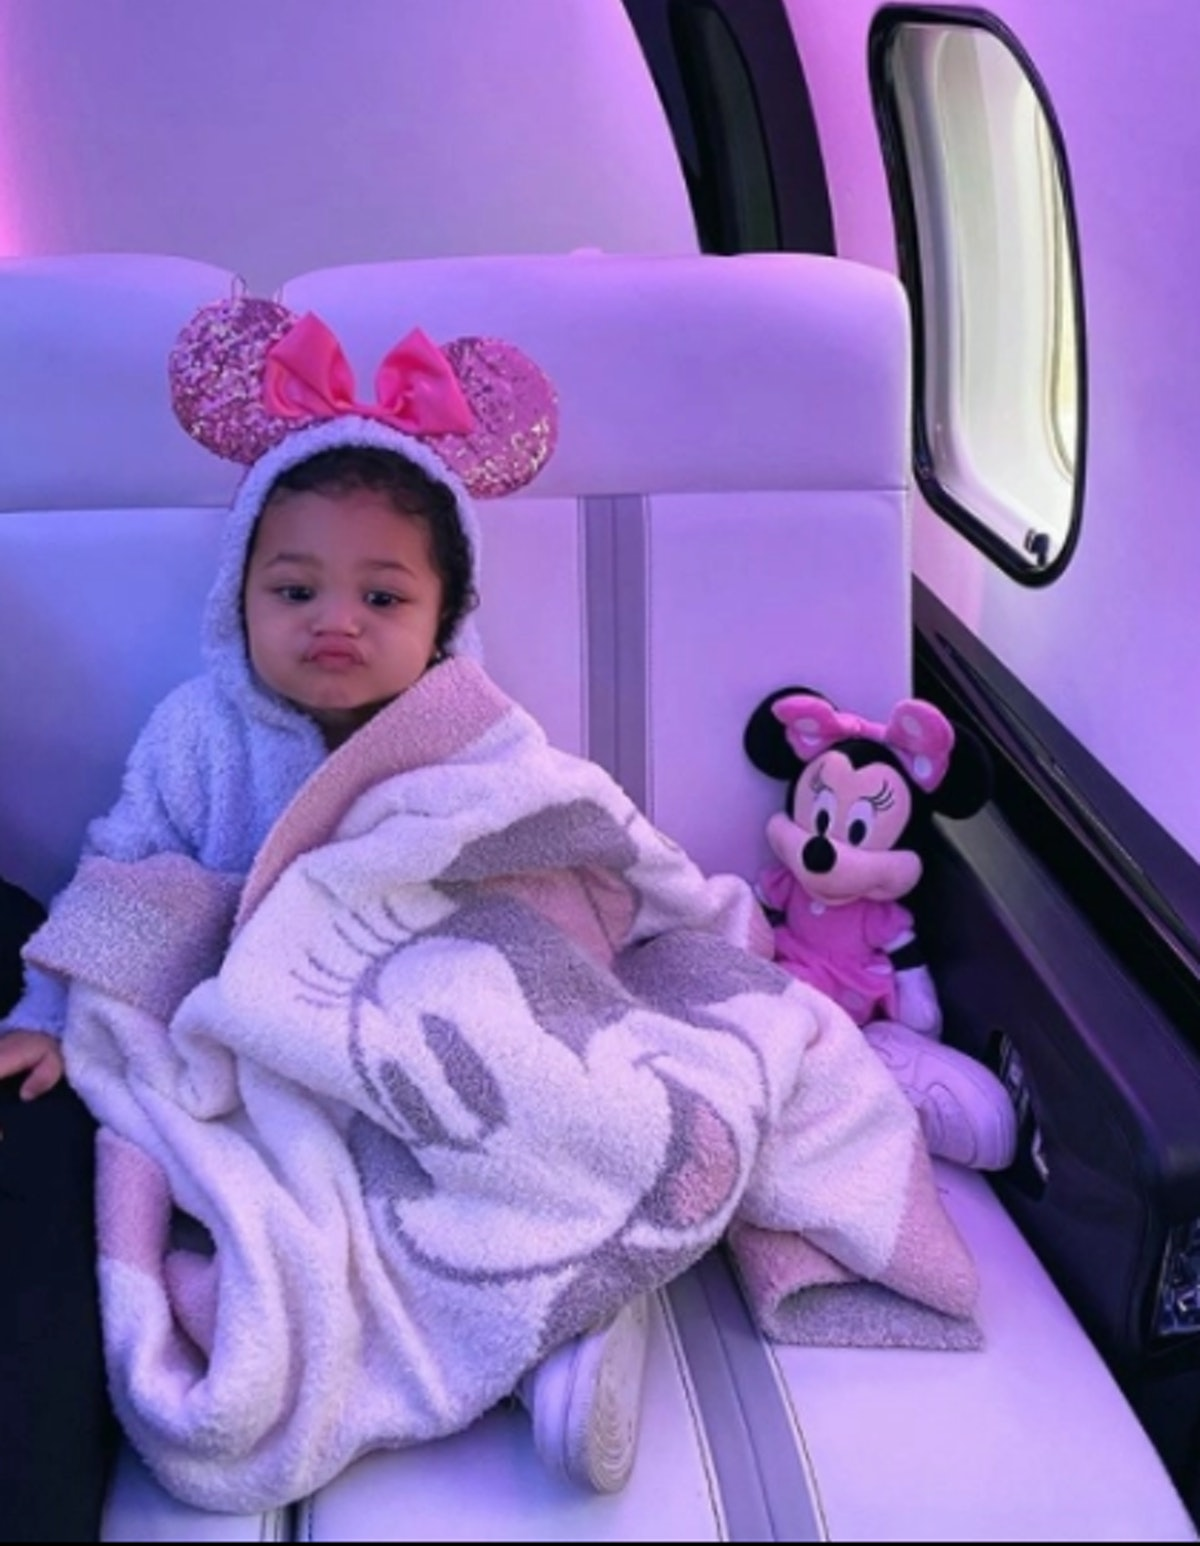 Stormi takes a ride on mom Kylie Jenner's private plane.